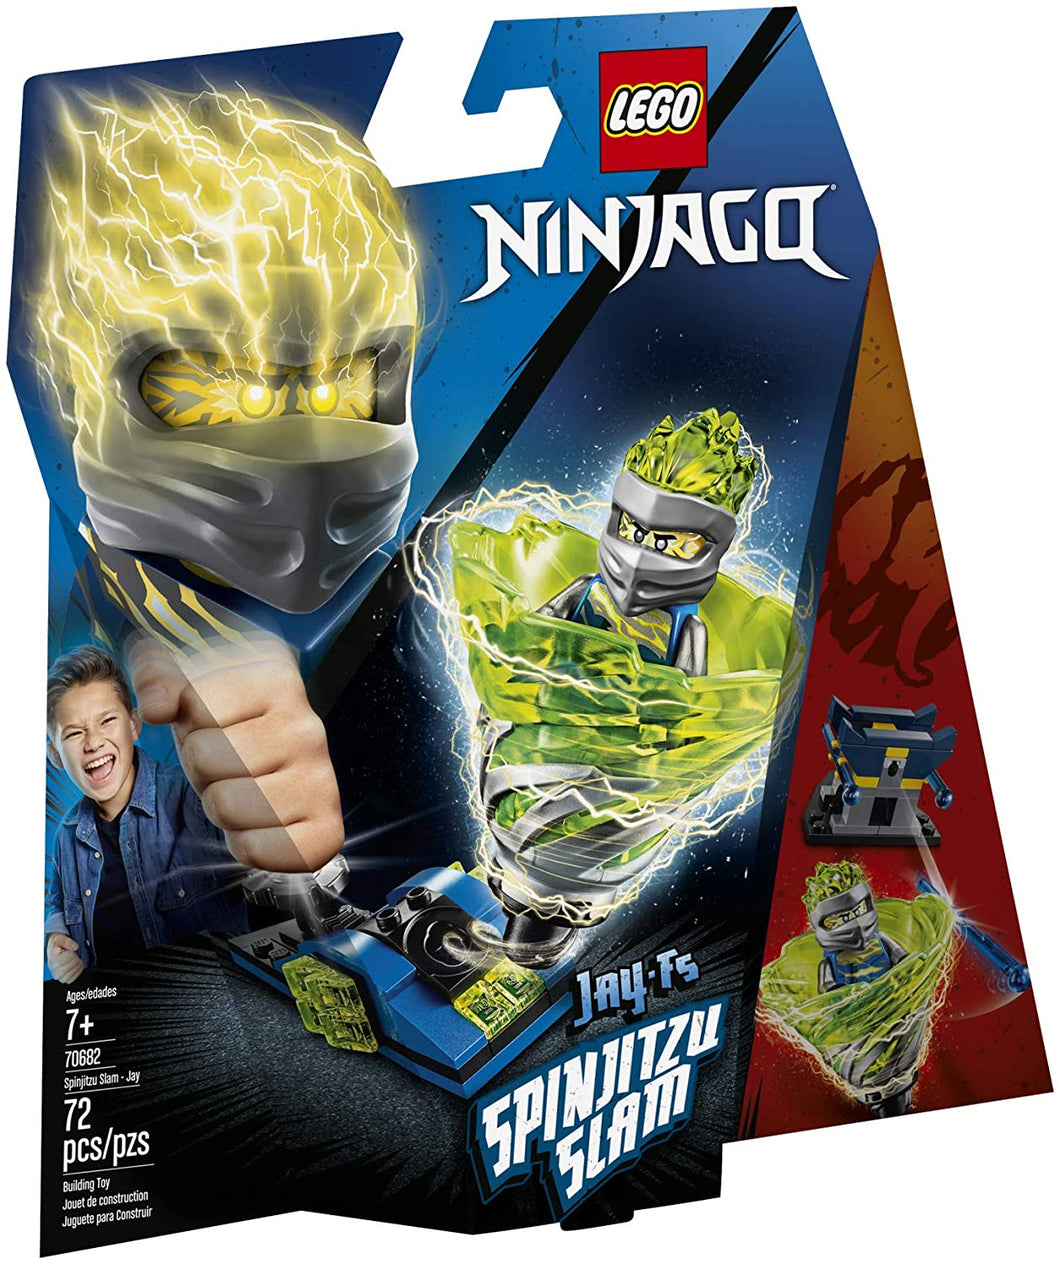 LEGO® Ninjago 70682 Spinjitzu Slam: Jay (72 pieces)